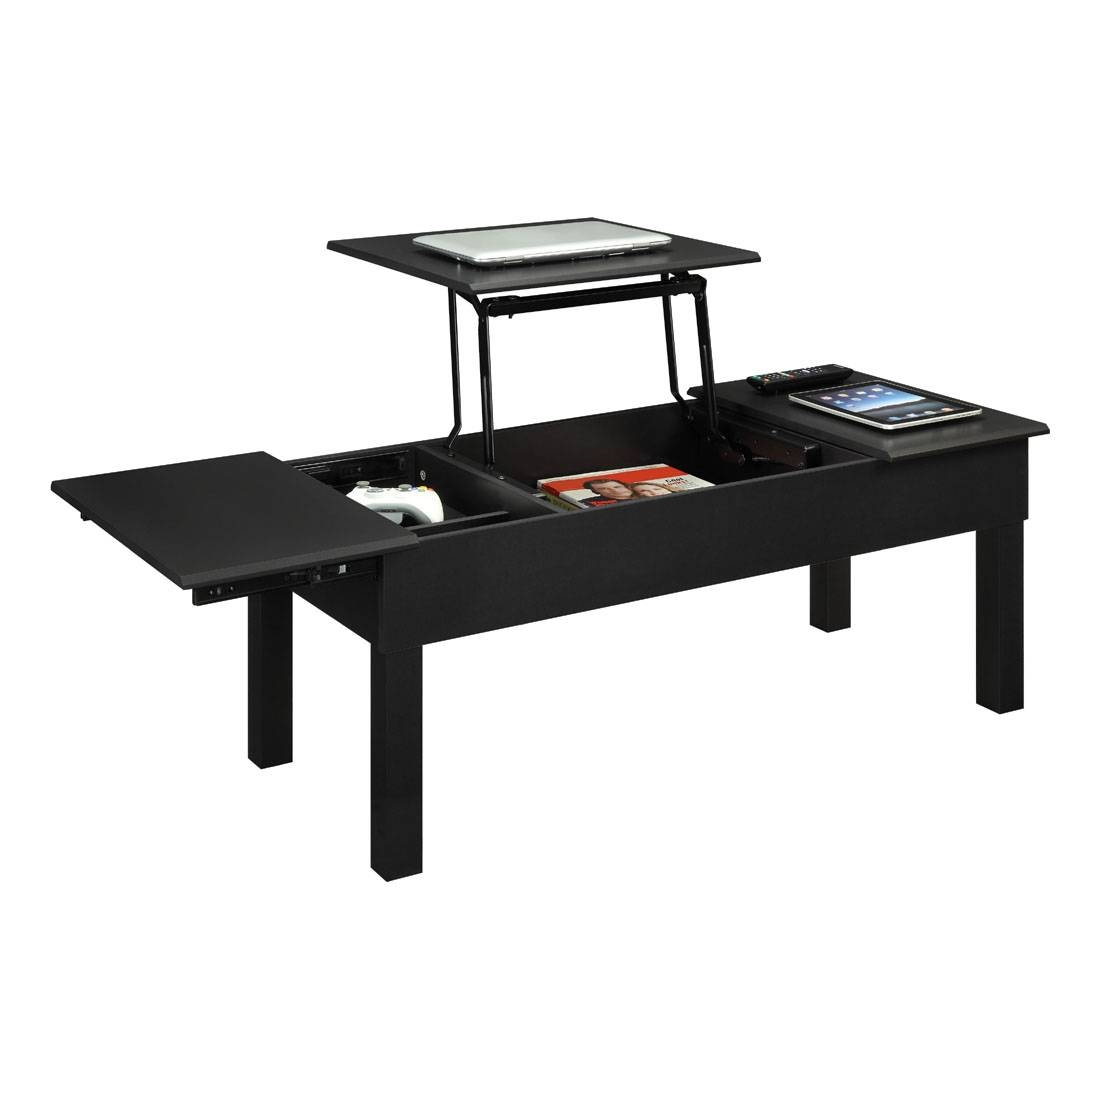 Altra Parsons Extension Coffee Table 5098096 Pertaining To Opens Up Coffee Tables (View 15 of 30)